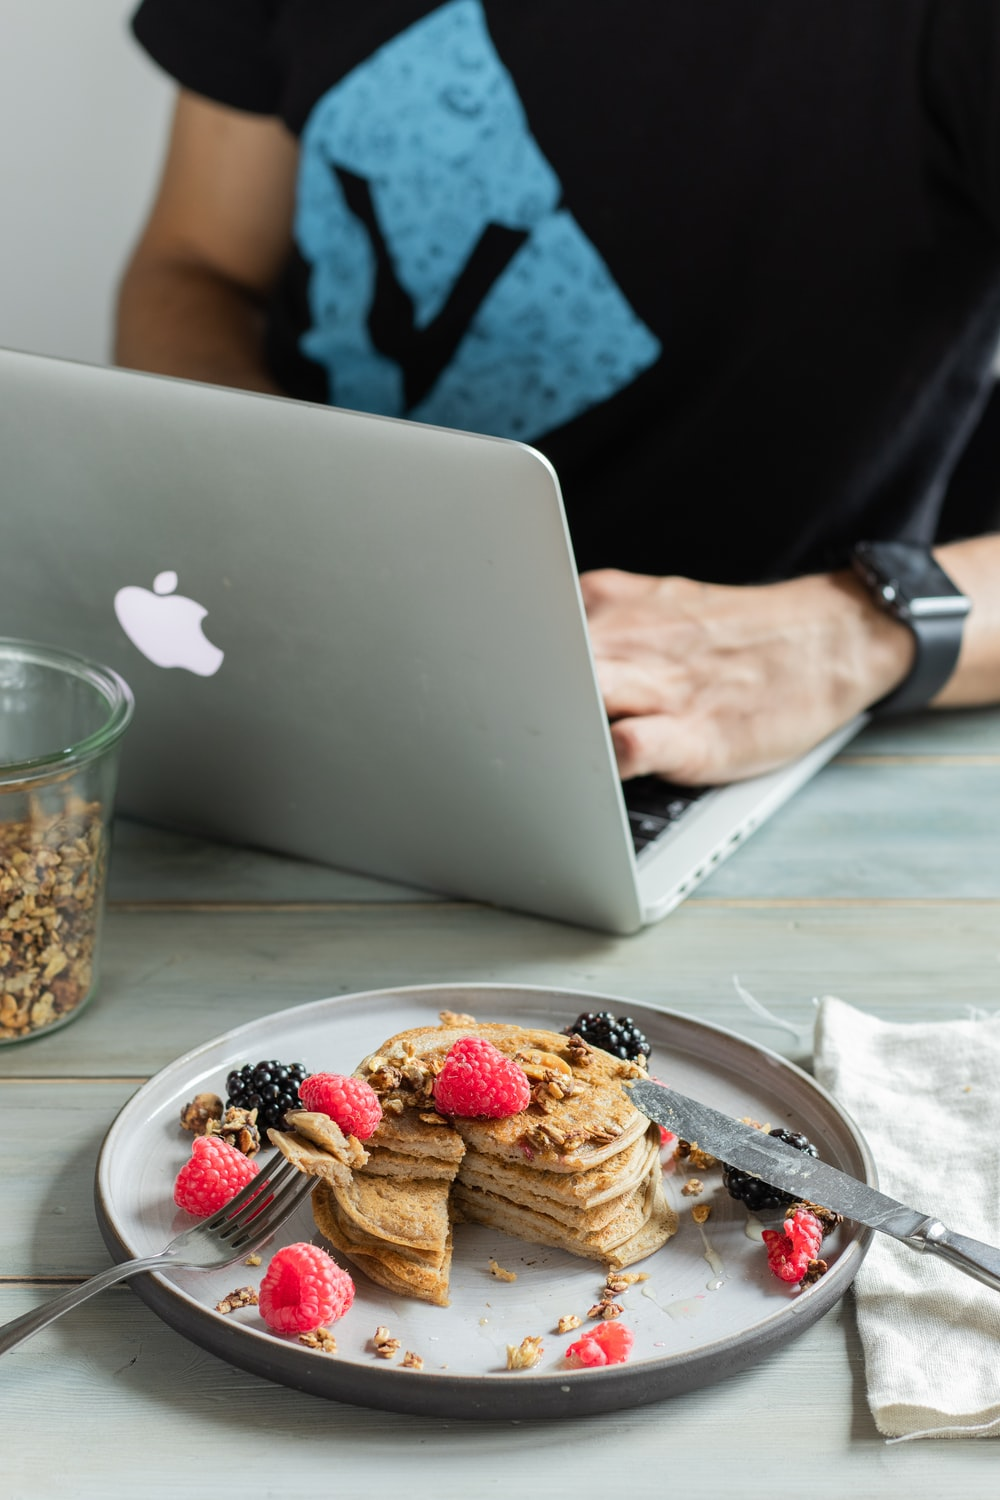 person holding silver macbook near cookies on white ceramic plate